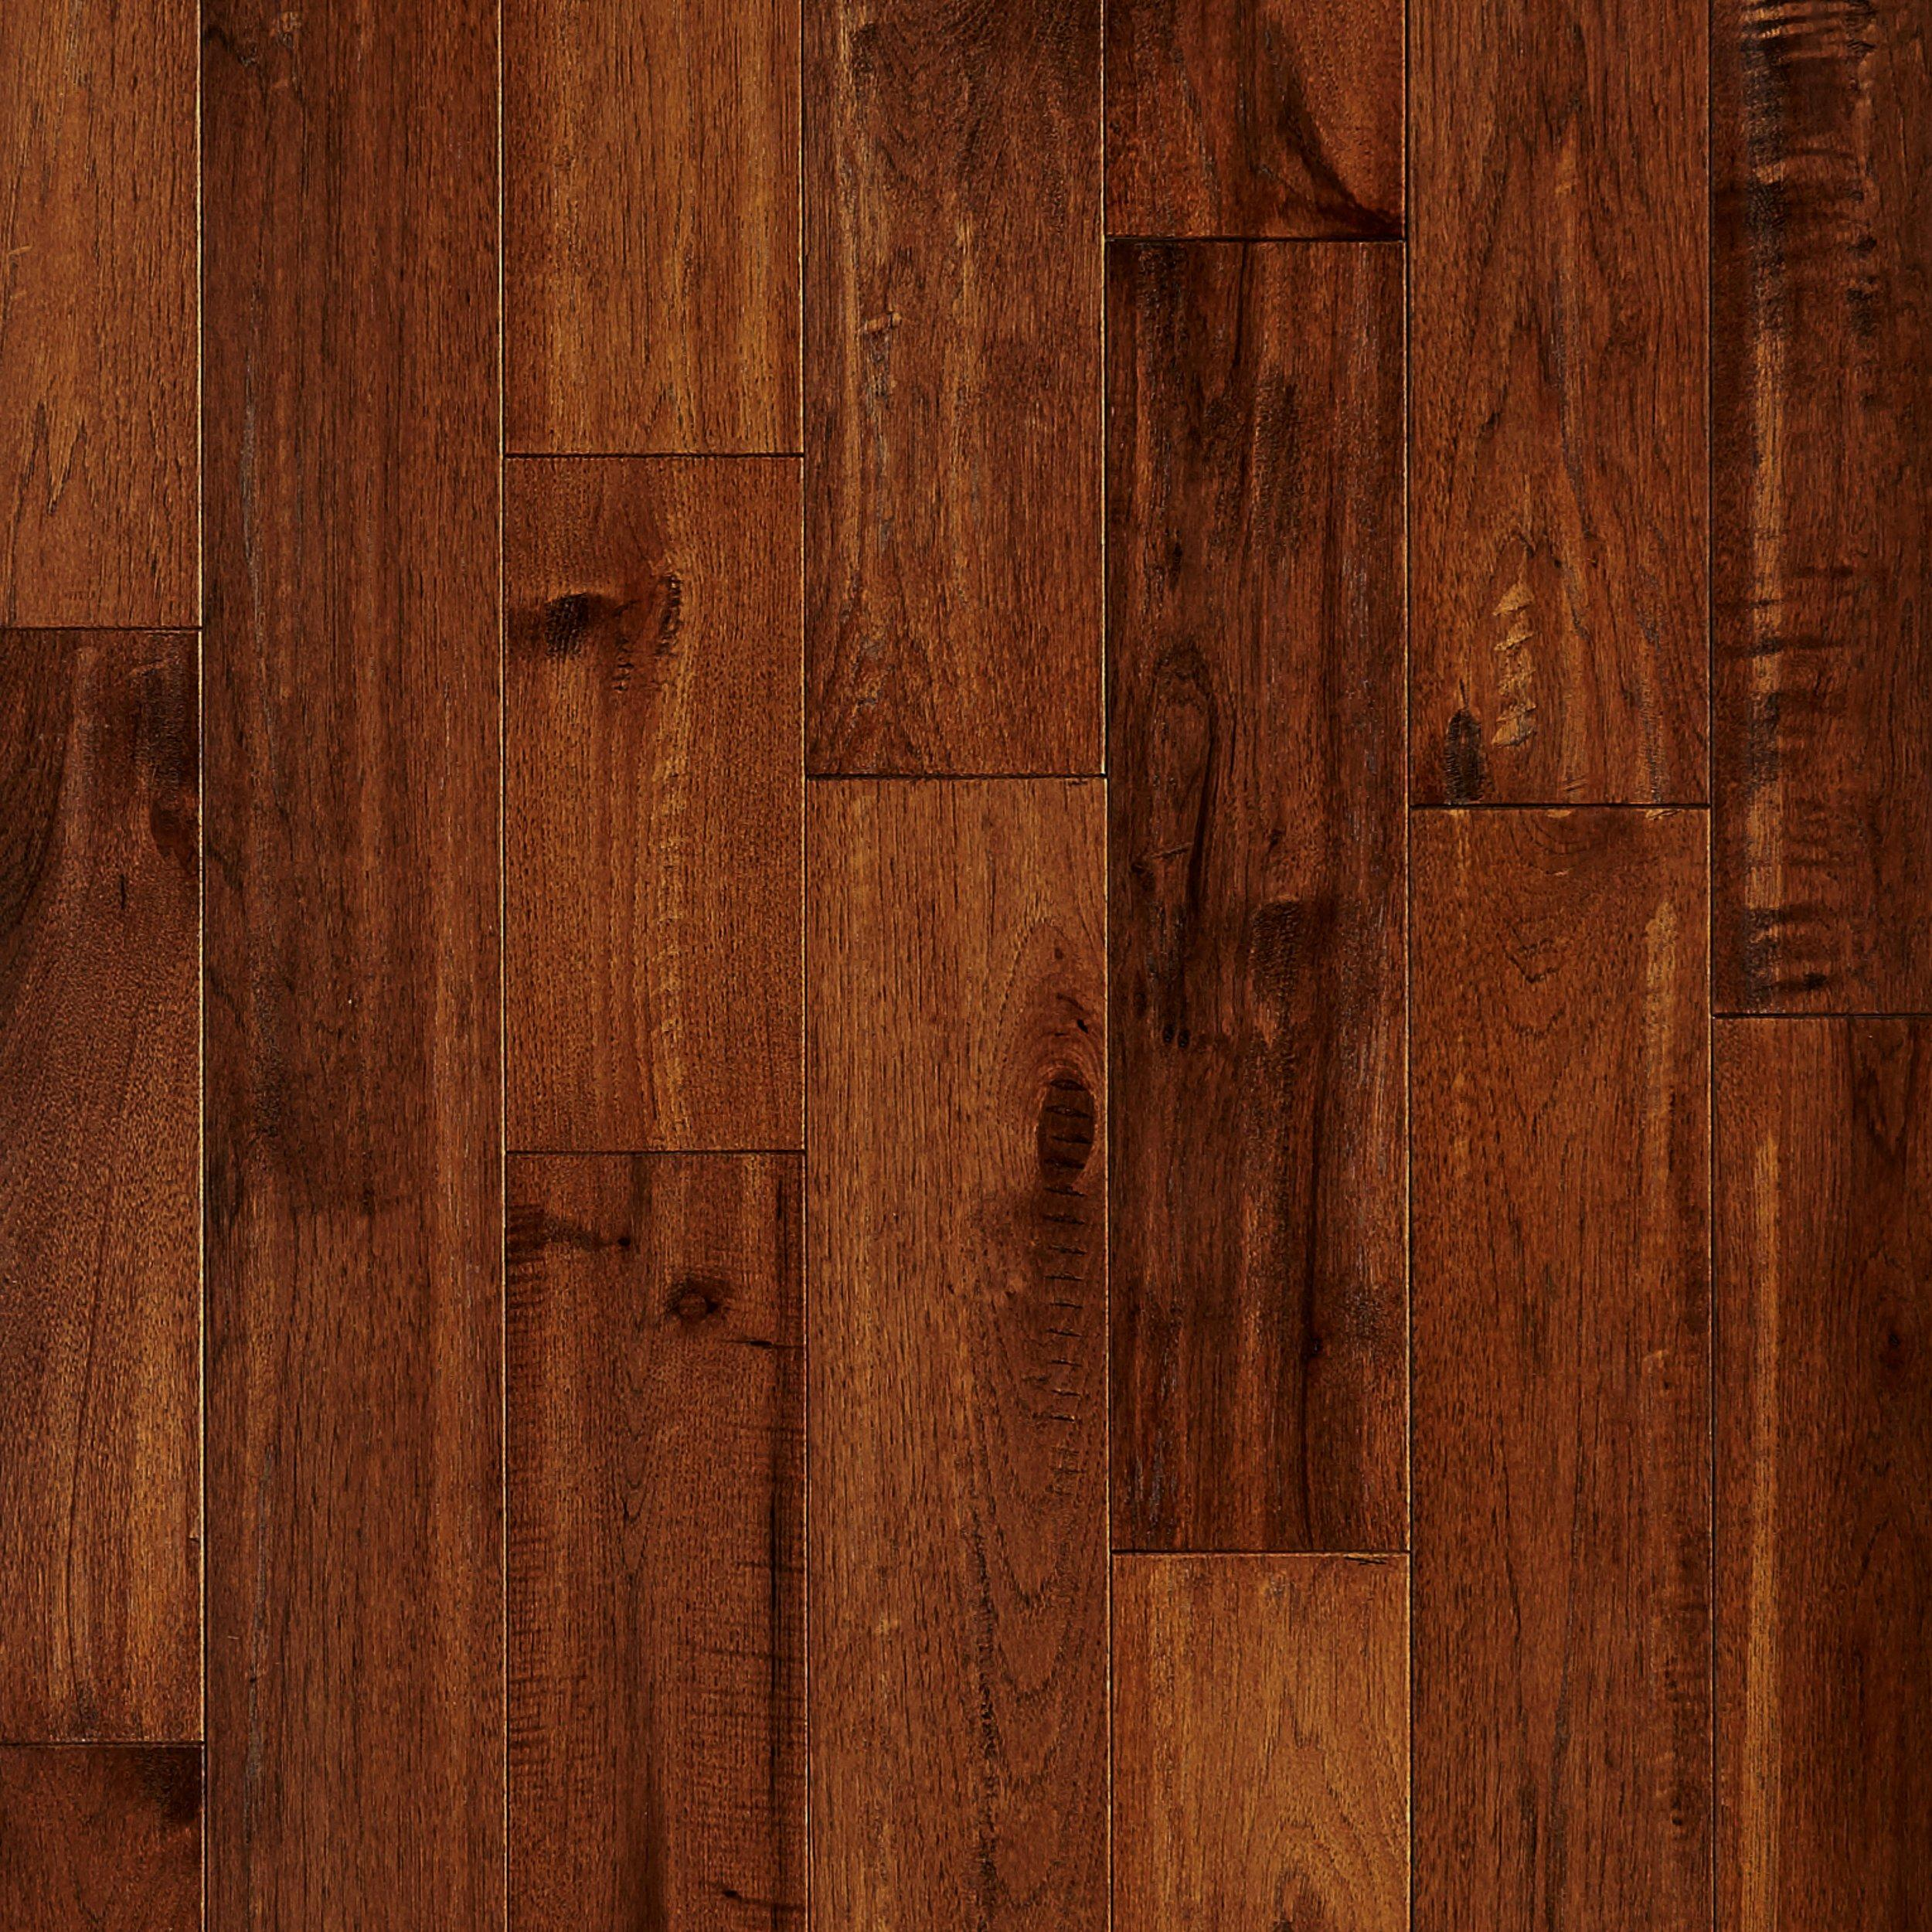 Chestnut Hickory Hand Scraped Solid Hardwood 34in x 5in